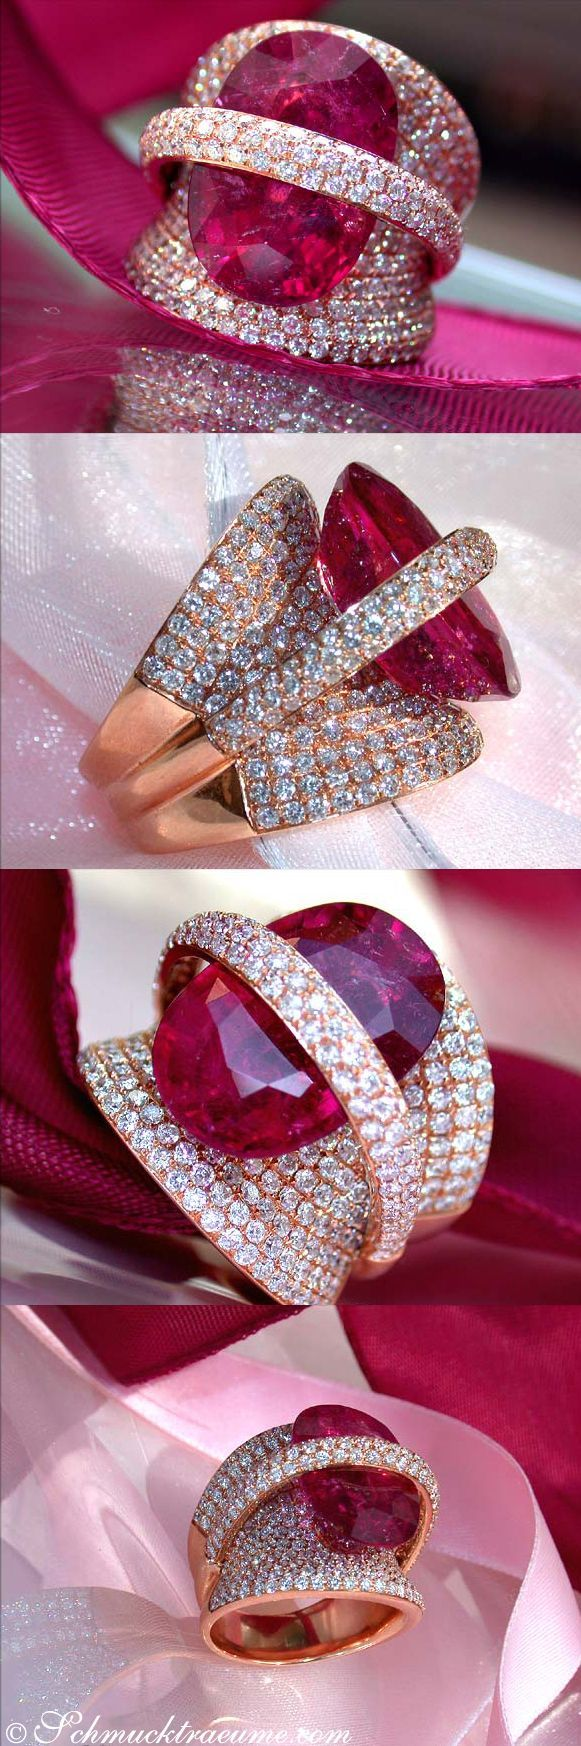 "beautyblingjewelry: "" Grand Rubellite Diam beauty bling jewelry fashion """